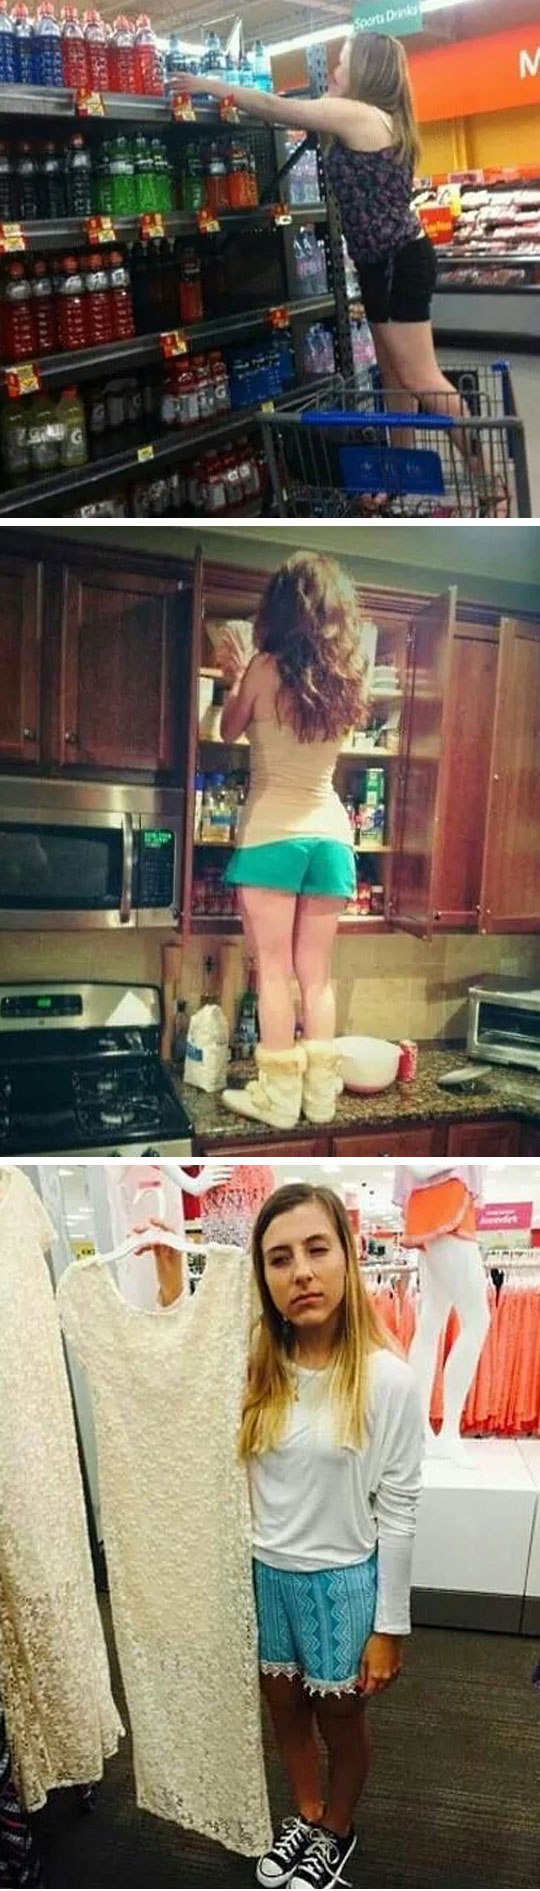 funny-short-girl-problems-store-kitchen